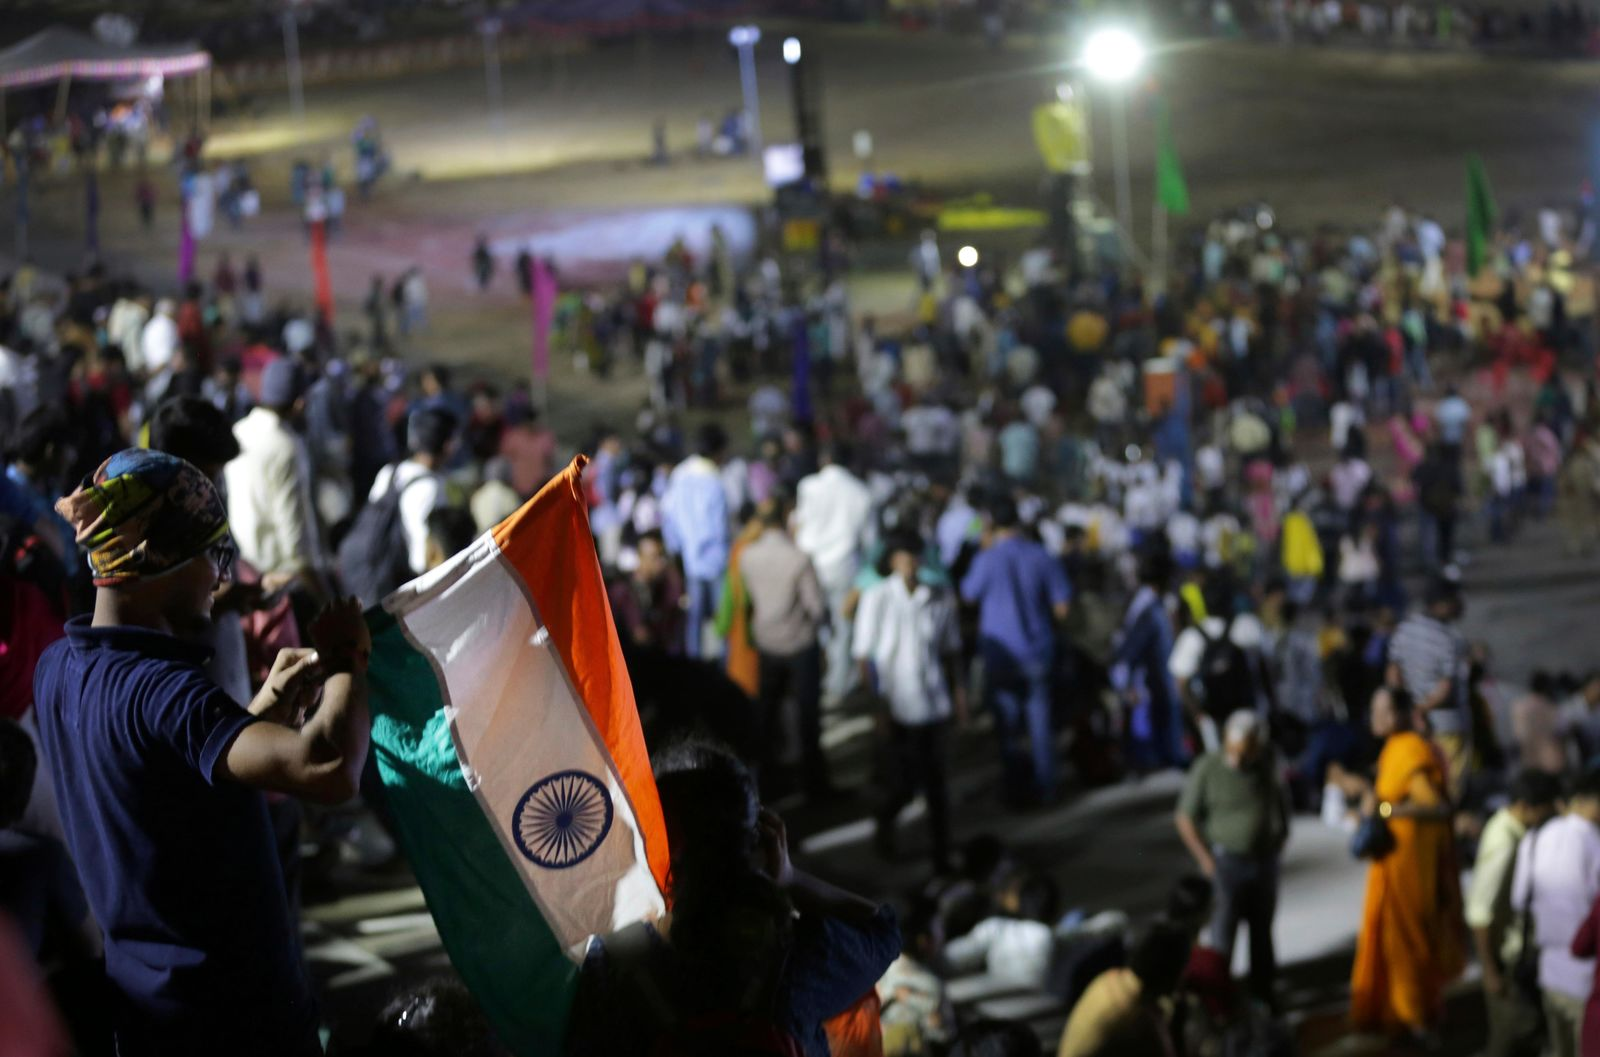 An Indian spectator folds Indian national flag as others leave after the Chandrayaan-2 mission was aborted at Sriharikota, in southern India, Monday, July 15, 2019. (AP Photo/Manish Swarup)